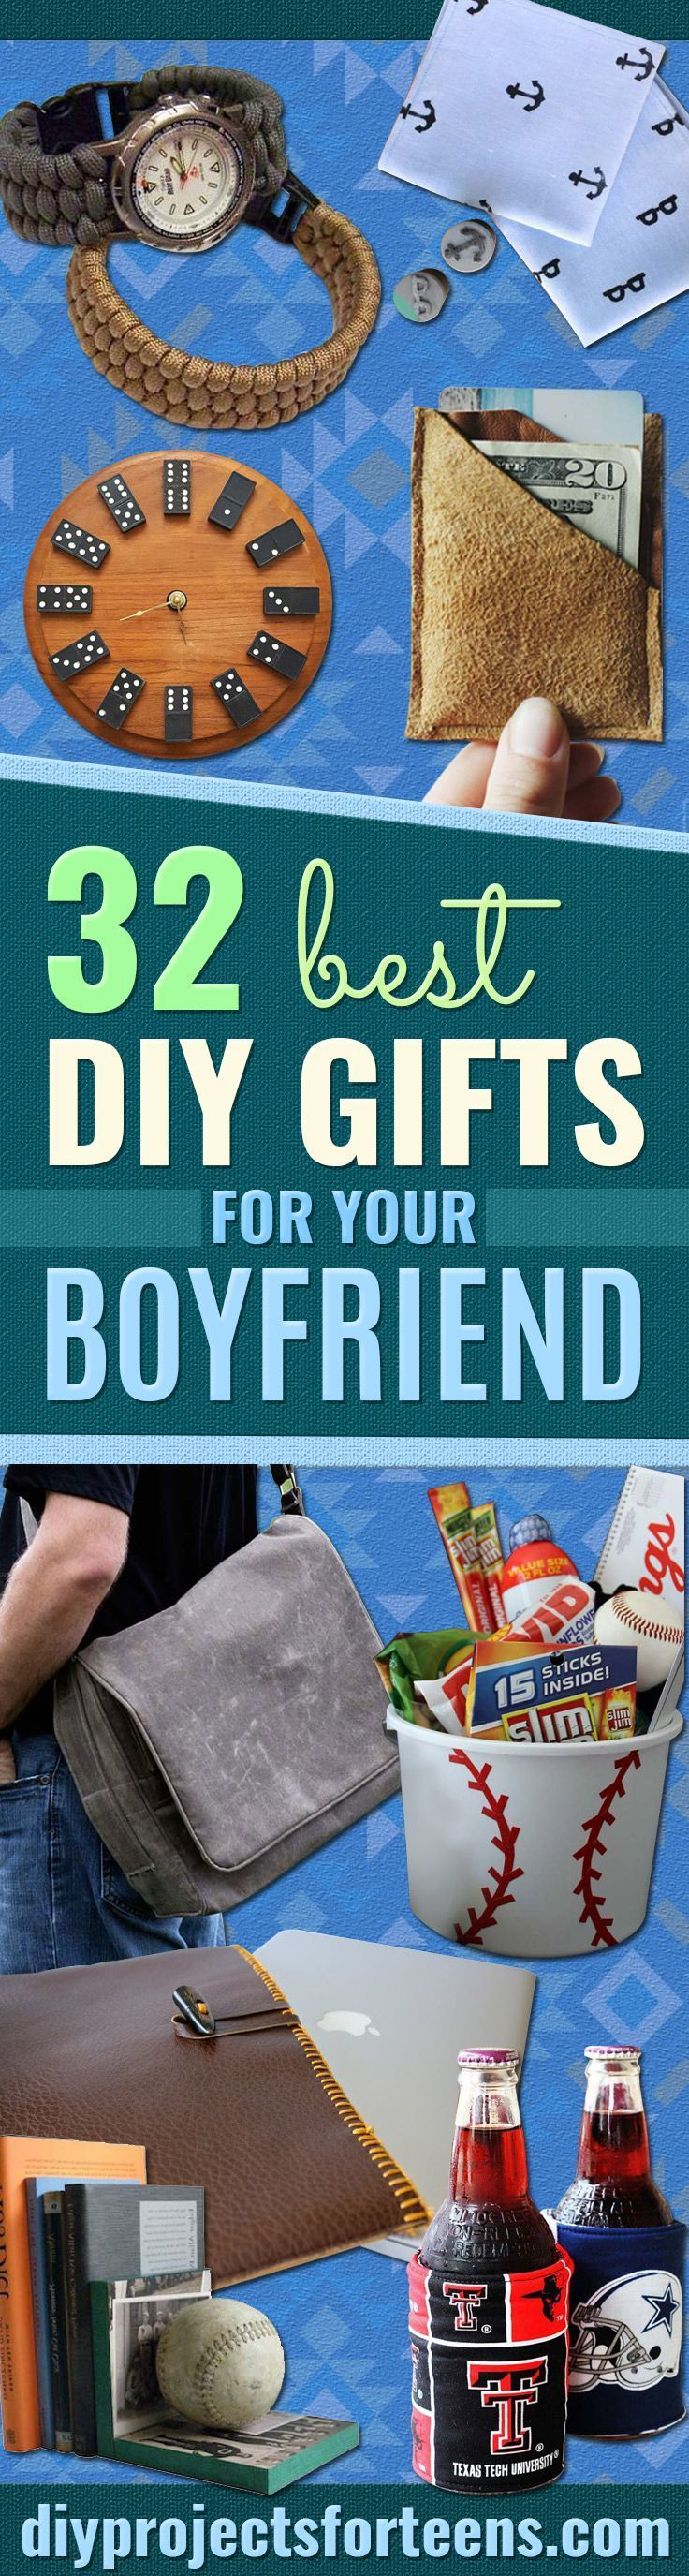 Cool DIY Gifts to Make For Your Boyfriend - Easy, Cheap and Awesome Gift Ideas to Make for Guys - Fun Crafts and Presents to Give to Boyfriends - Men Love These Gift Card Holders, Mason Jar Kits, Thoughtful Handmade Christmas Gifts - DIY Projects for Teens http://diyprojectsforteens.com/diy-gifts-boyfriend